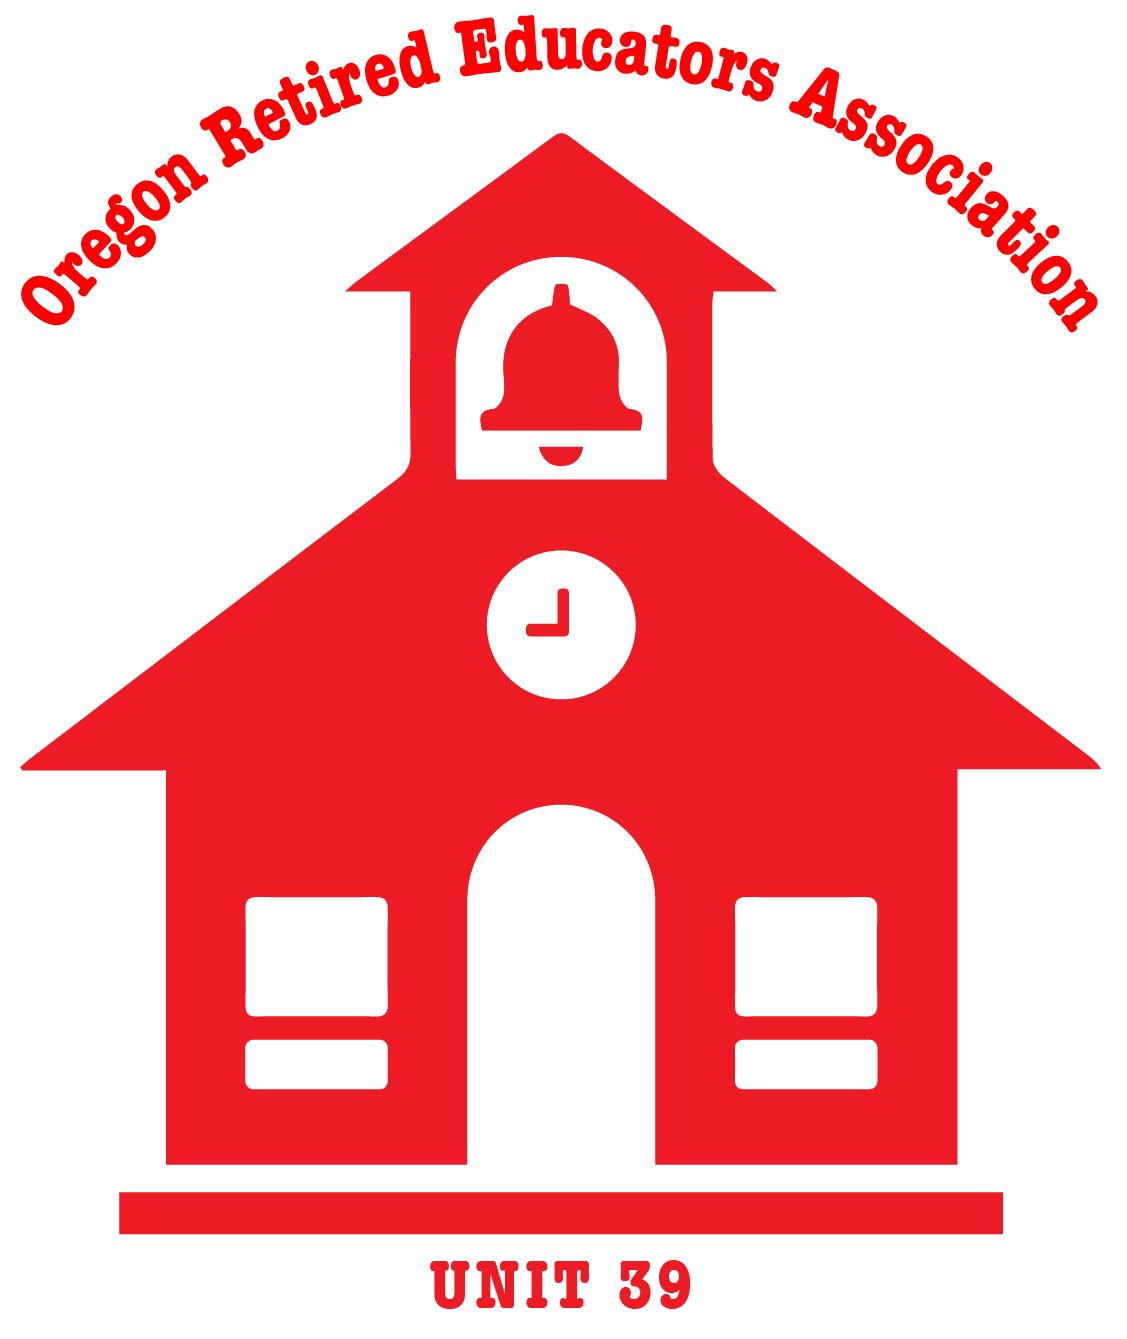 Oregon Retired Educators Association